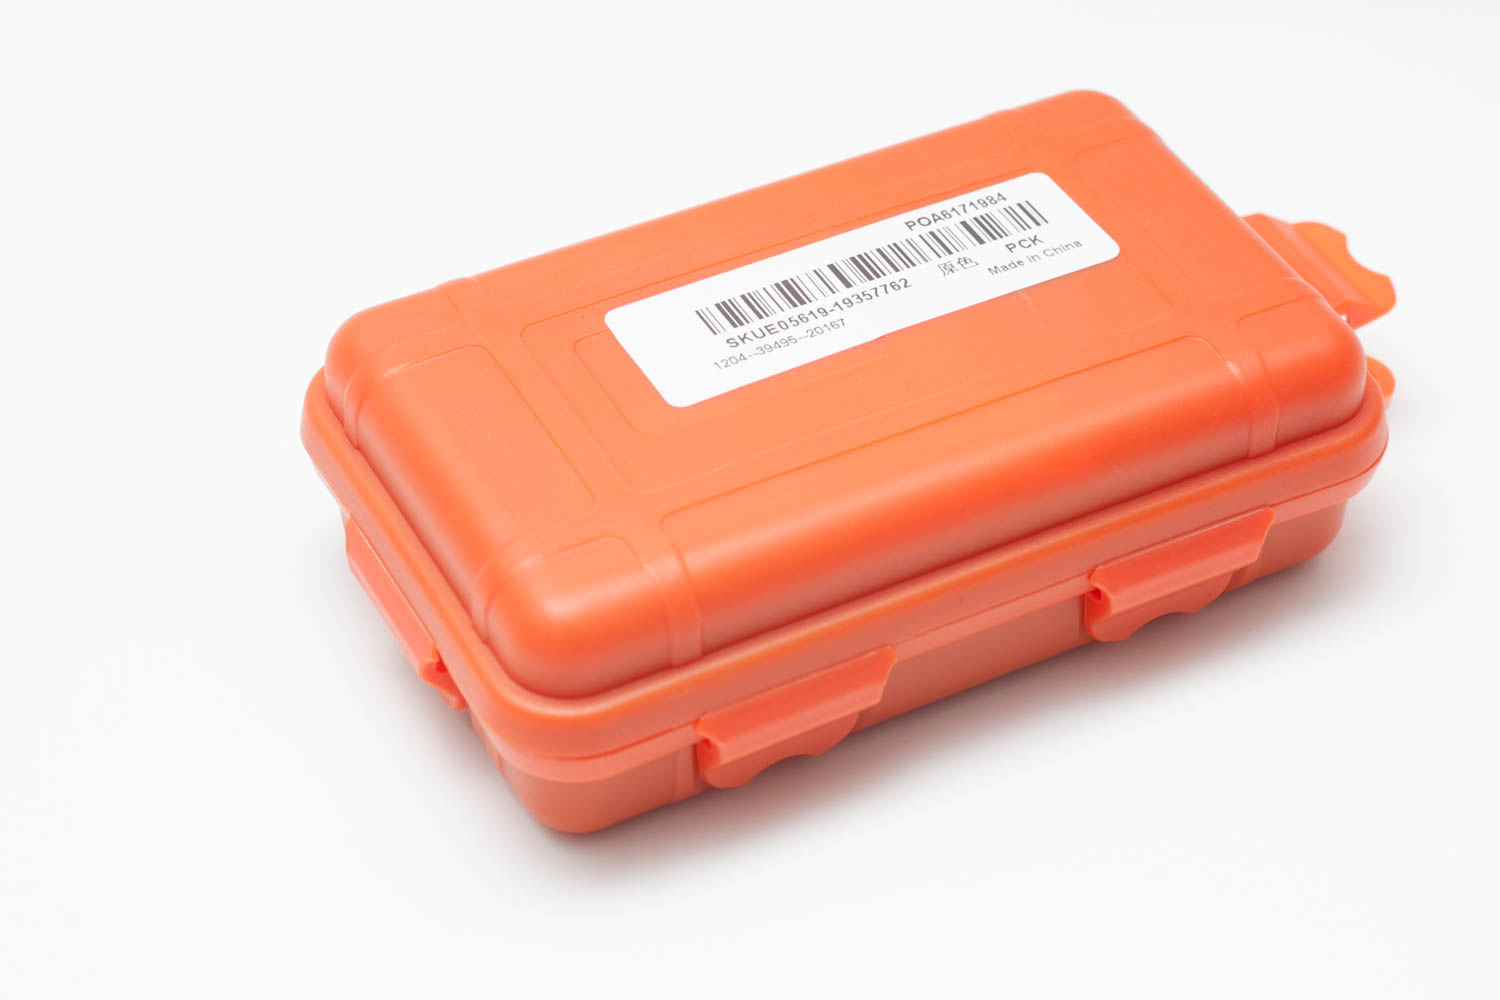 orange storage case for Jetbeam Dm25 flashlight